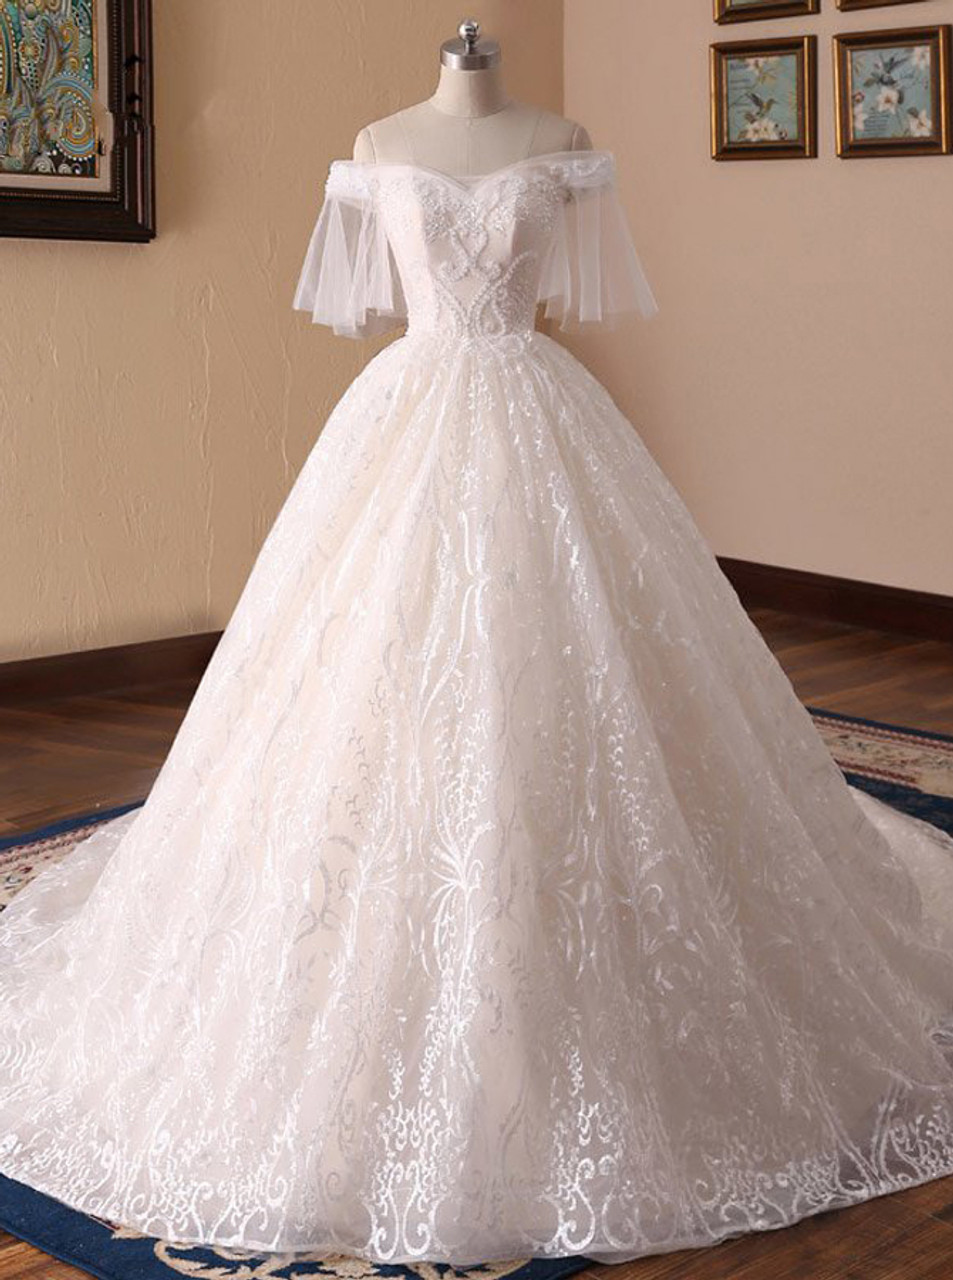 Princess Wedding Gown: Lace Wedding Dresses With Short Sleeves,Princess Ball Gown